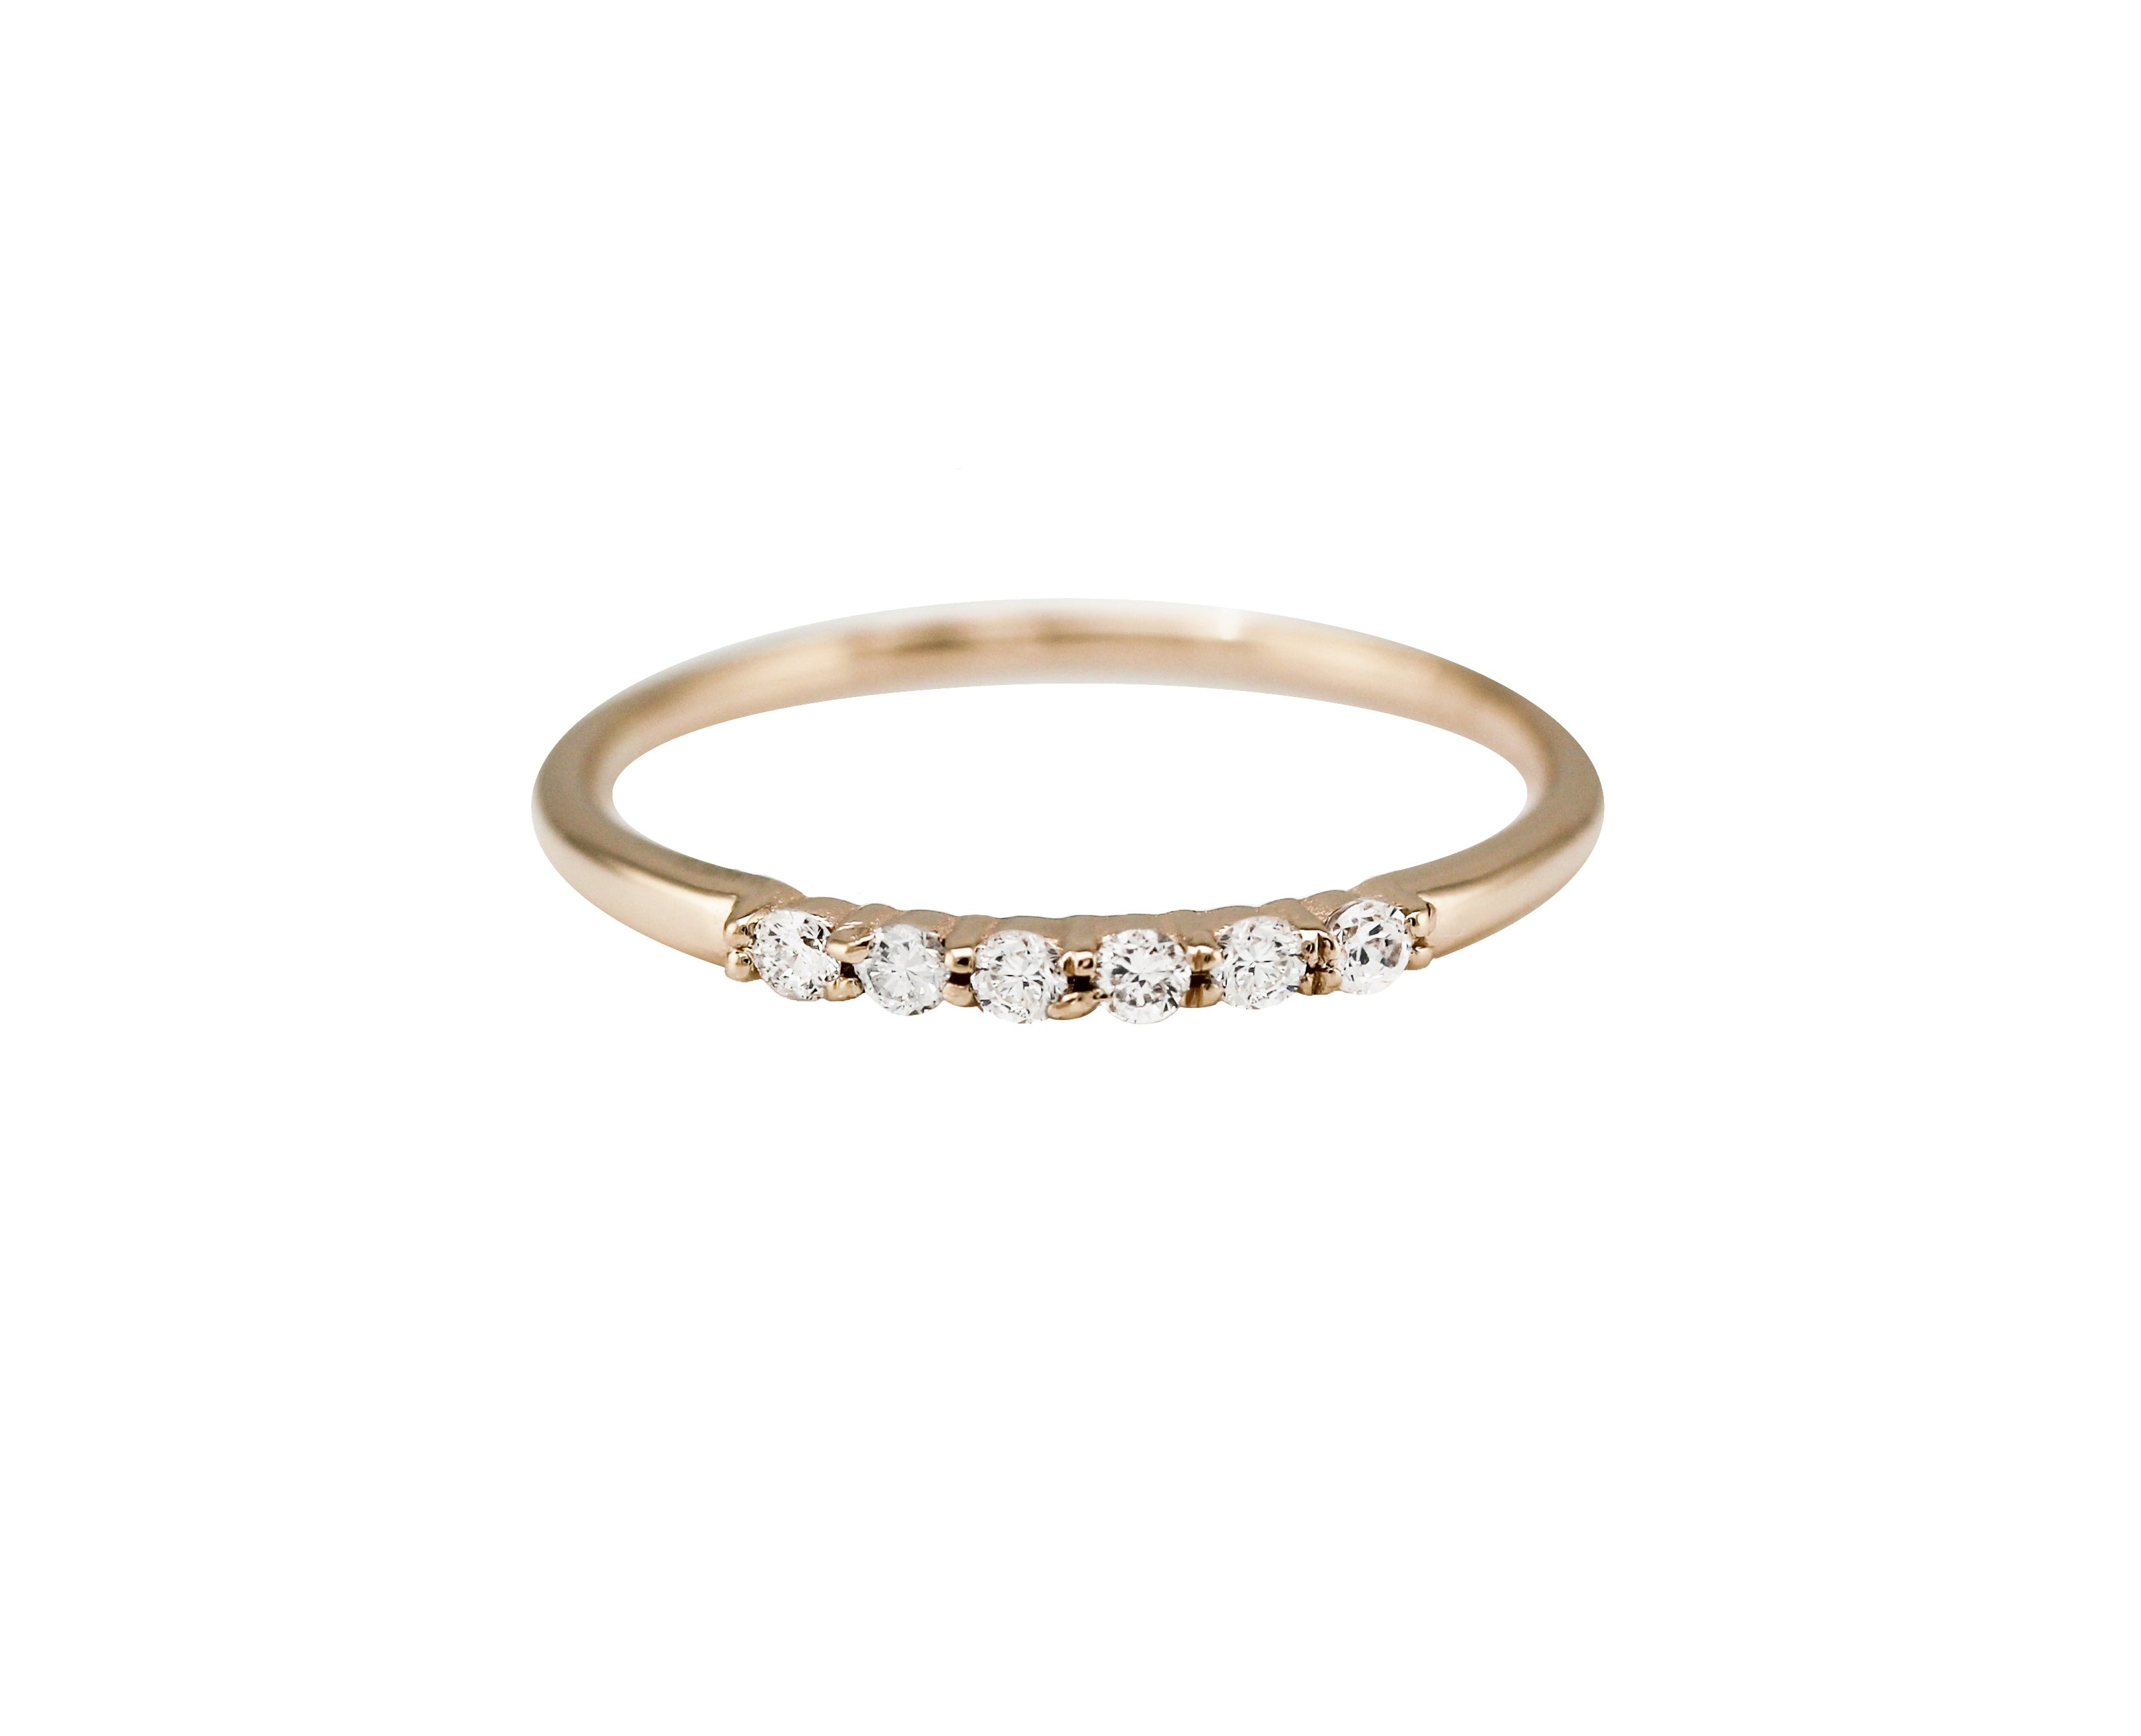 6 PRONG DIAMOND BAND